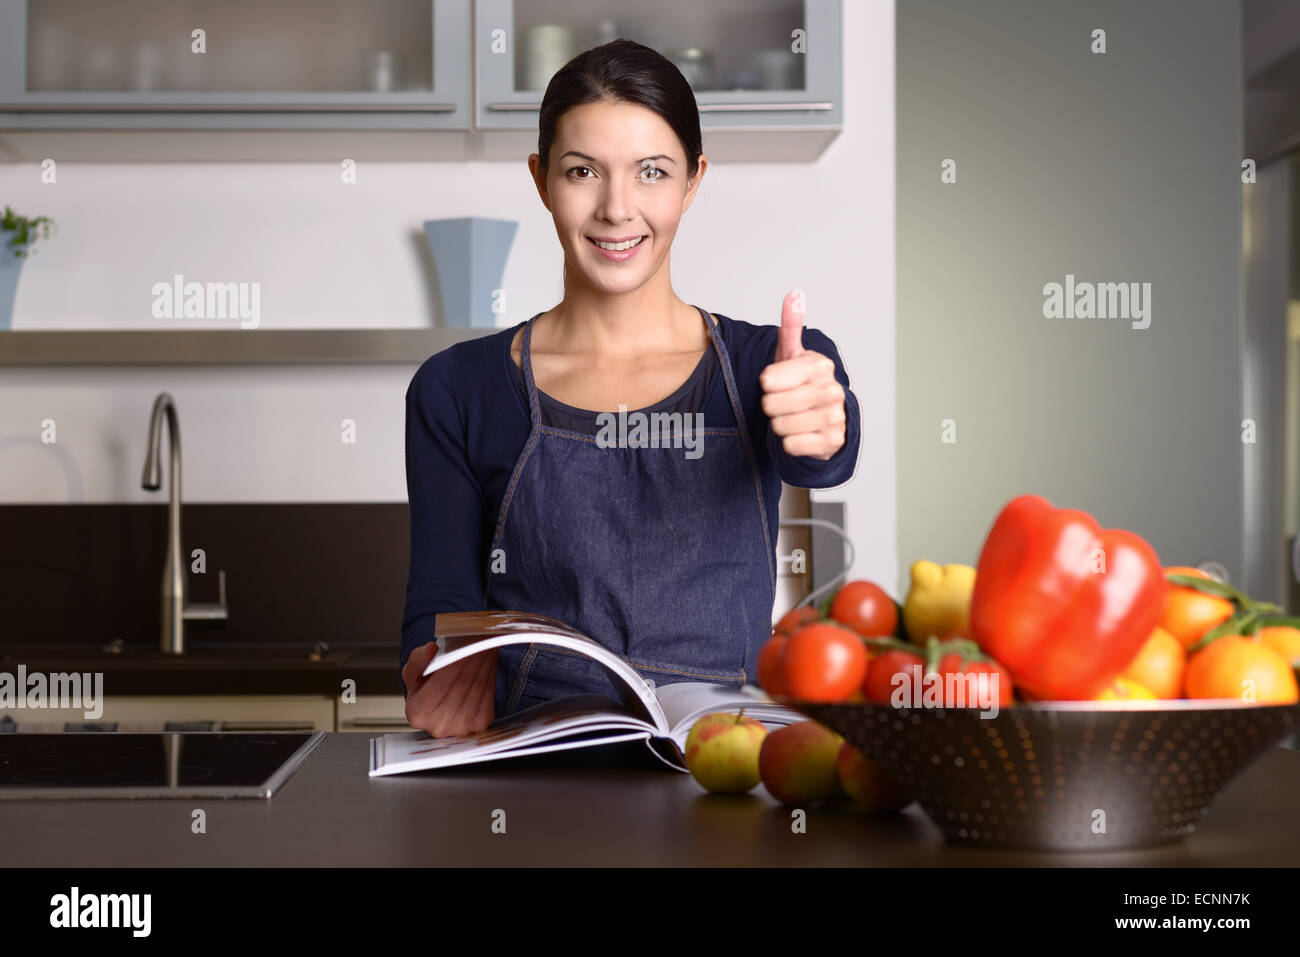 Happy middle-aged Woman Wearing Apron Standing at the Kitchen ...